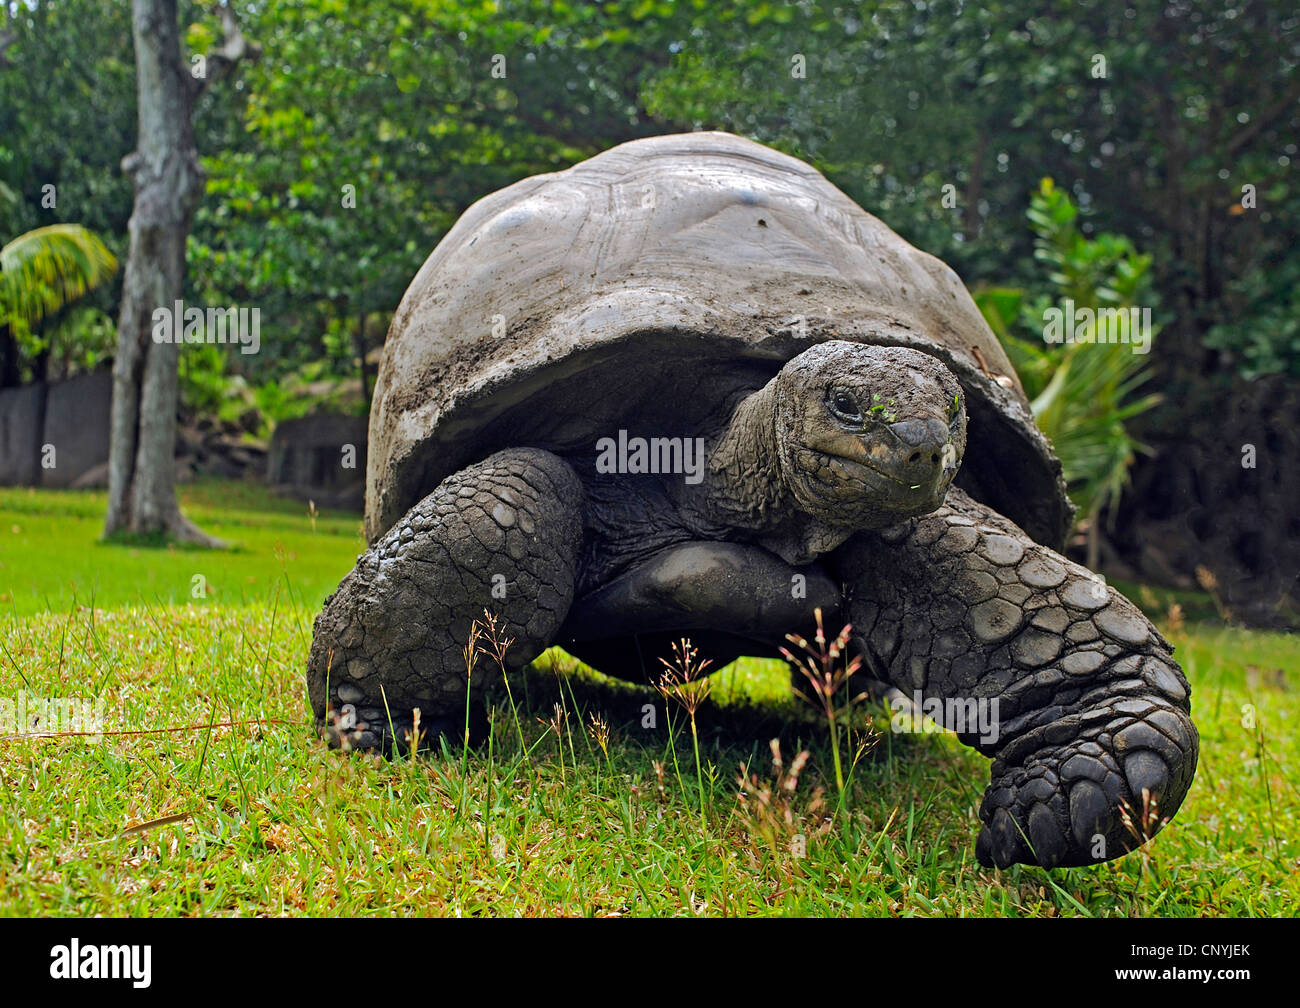 Seychelles giant tortoise, Aldabran giant tortoise, Aldabra giant tortoise (Aldabrachelys gigantea, Testudo gigantea, Geochelone gigantea, Megalochelys gigantea), walking in a meadow, Seychelles, La Digue Stock Photo